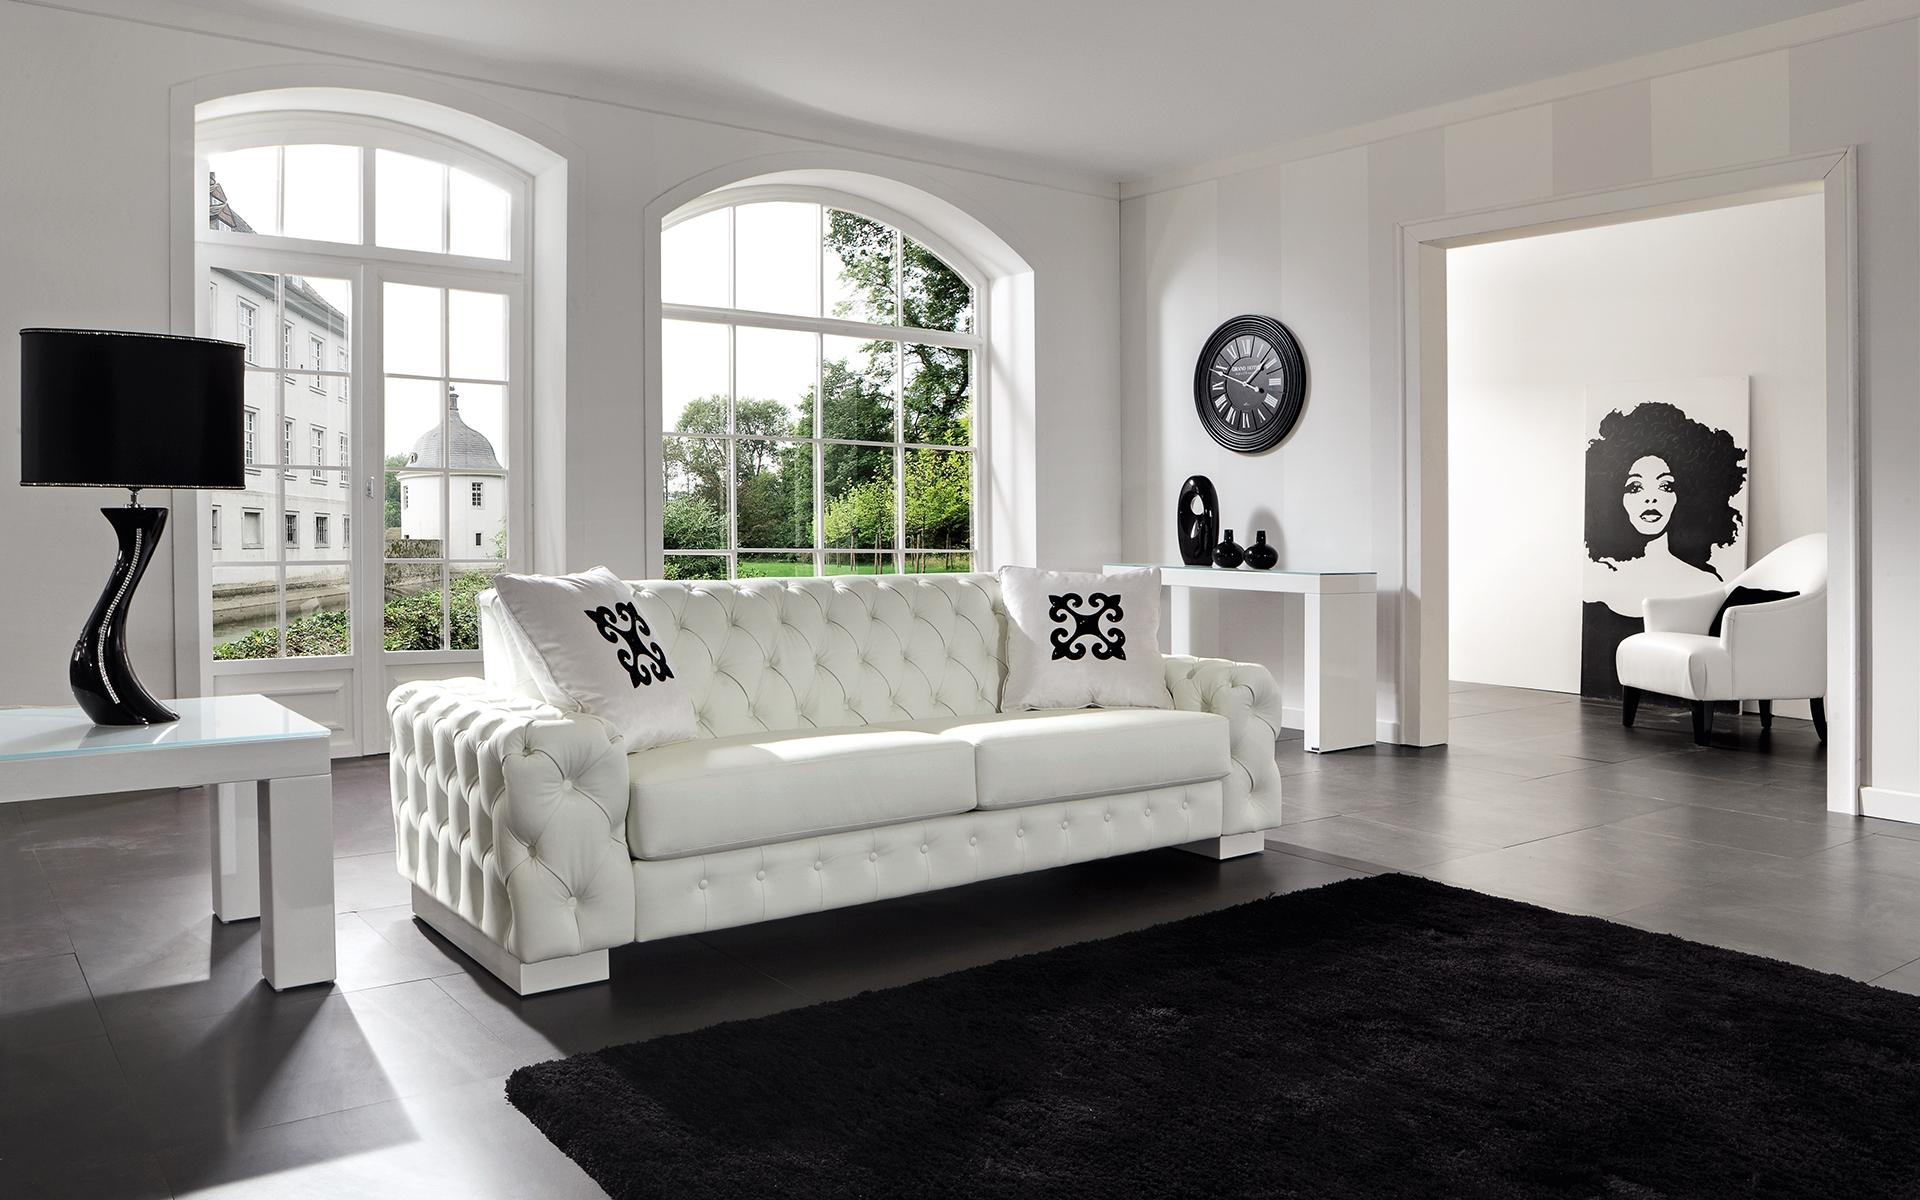 chesterfield sofa baltimore finkeldei polsterm belmanufaktur. Black Bedroom Furniture Sets. Home Design Ideas